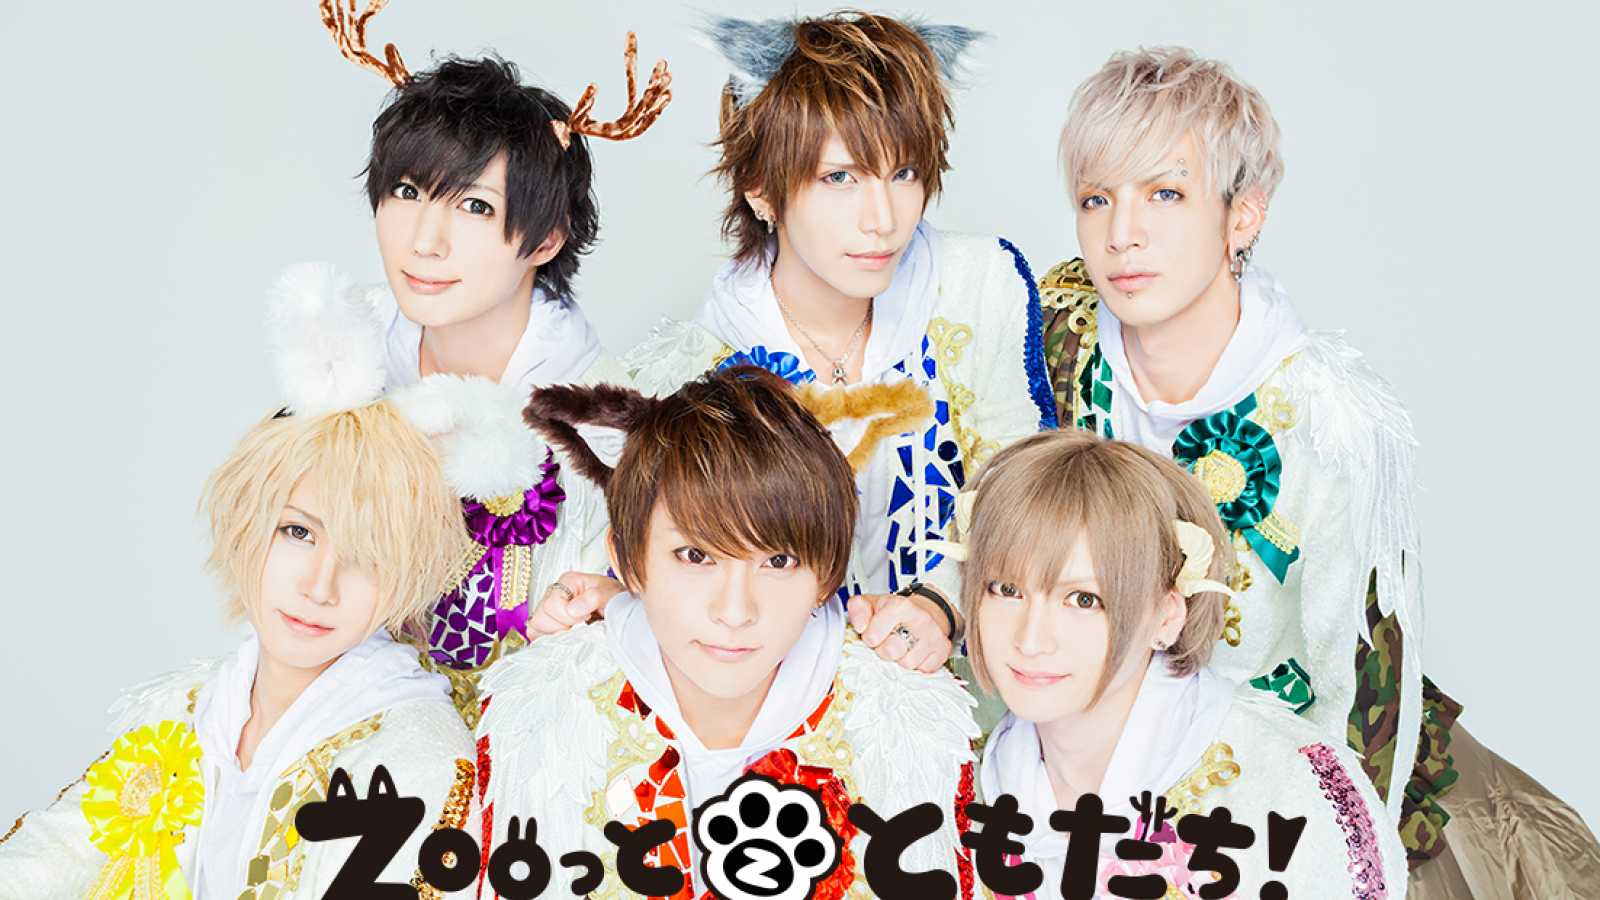 Un nouveau projet d'idoles visual kei : ZOOTO TOMODACHI © ZOOTTO TOMODACHI. All rights reserved.